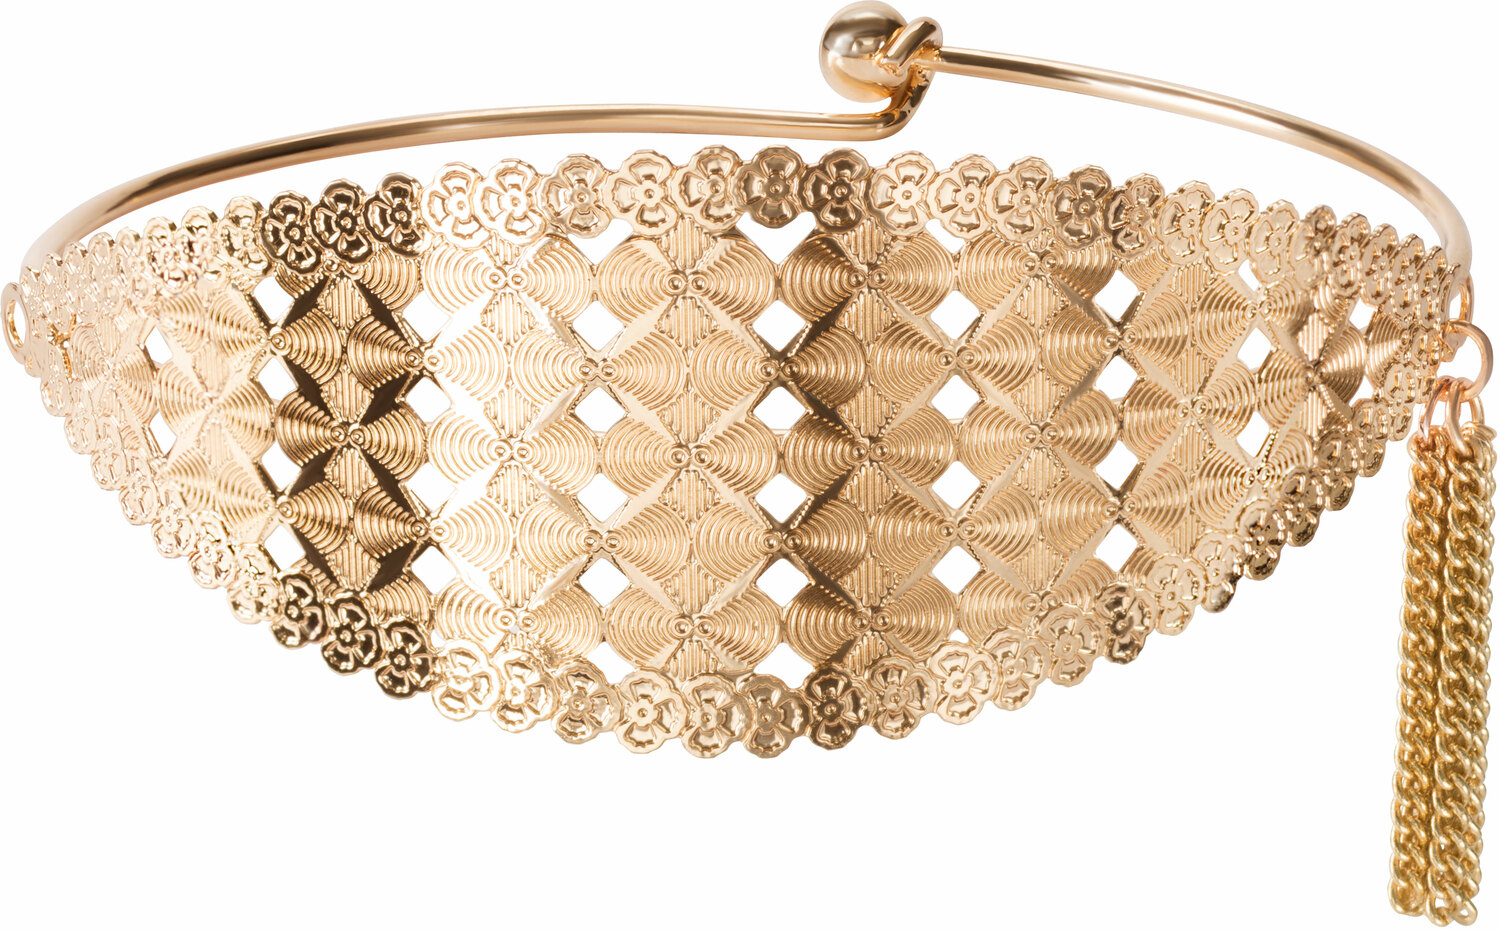 Gold Jazz by H2Z Filigree Jewelry - Gold Jazz - Filigree Bangle Bracelet